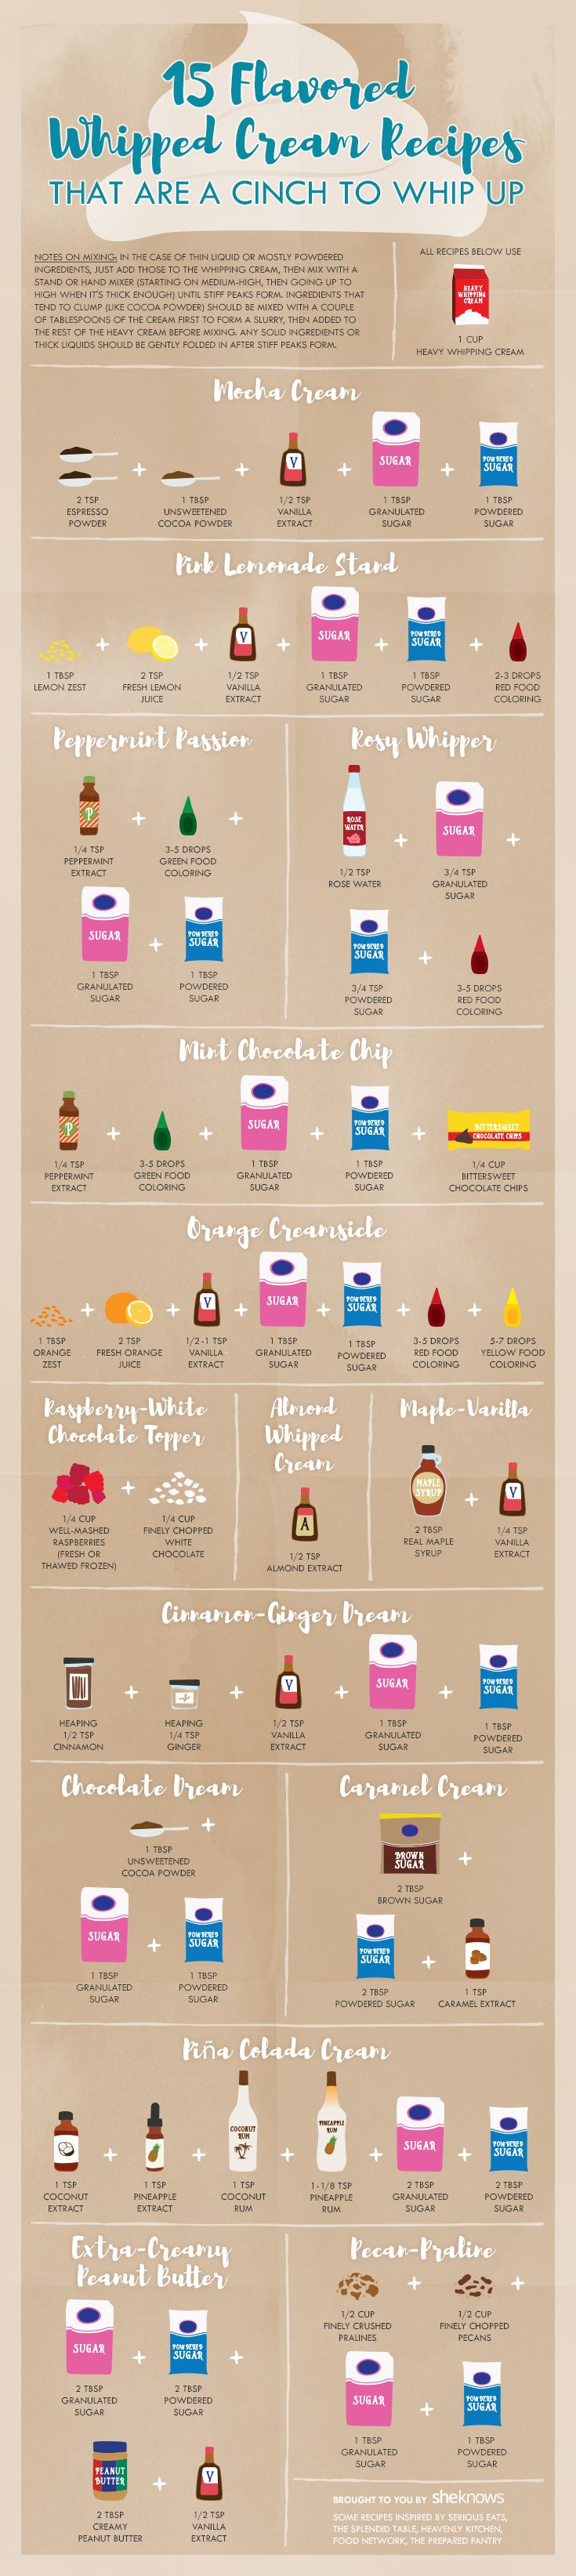 Making flavored whipped cream at home is so simple you'll wonder why you ever used store-bought - Infographic, Illustration and design made for SheKnows.com